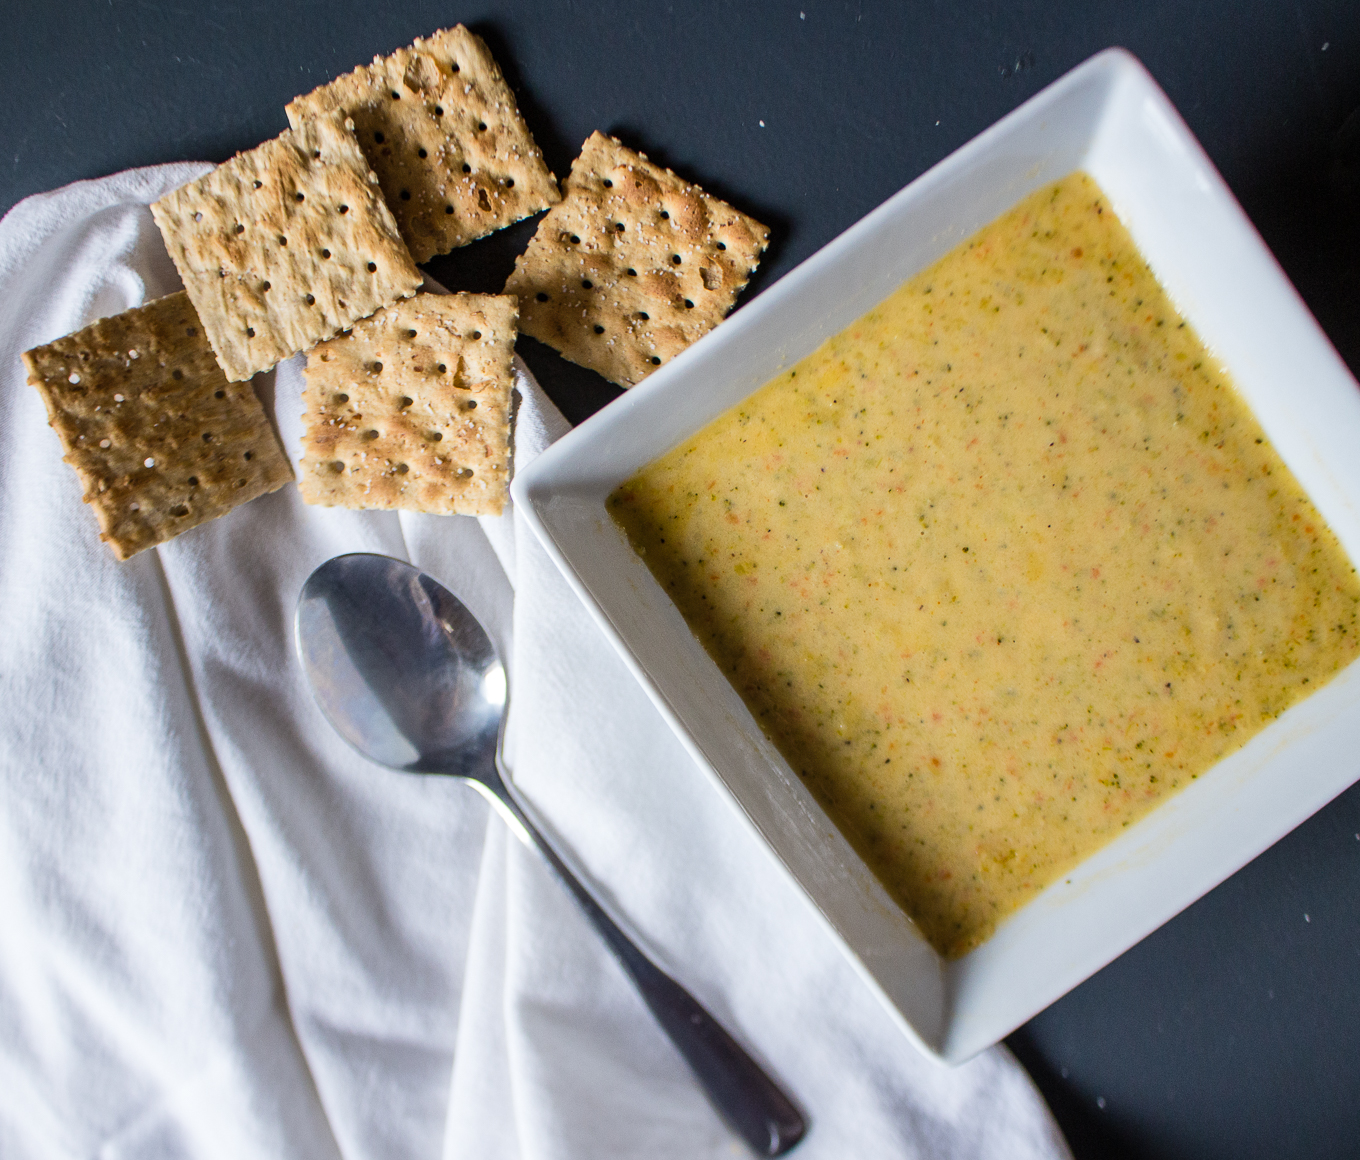 The Kentucky Gent, a men's fashion and lifestyle blogger, shares a recipe for Broccoli Cheddar soup.